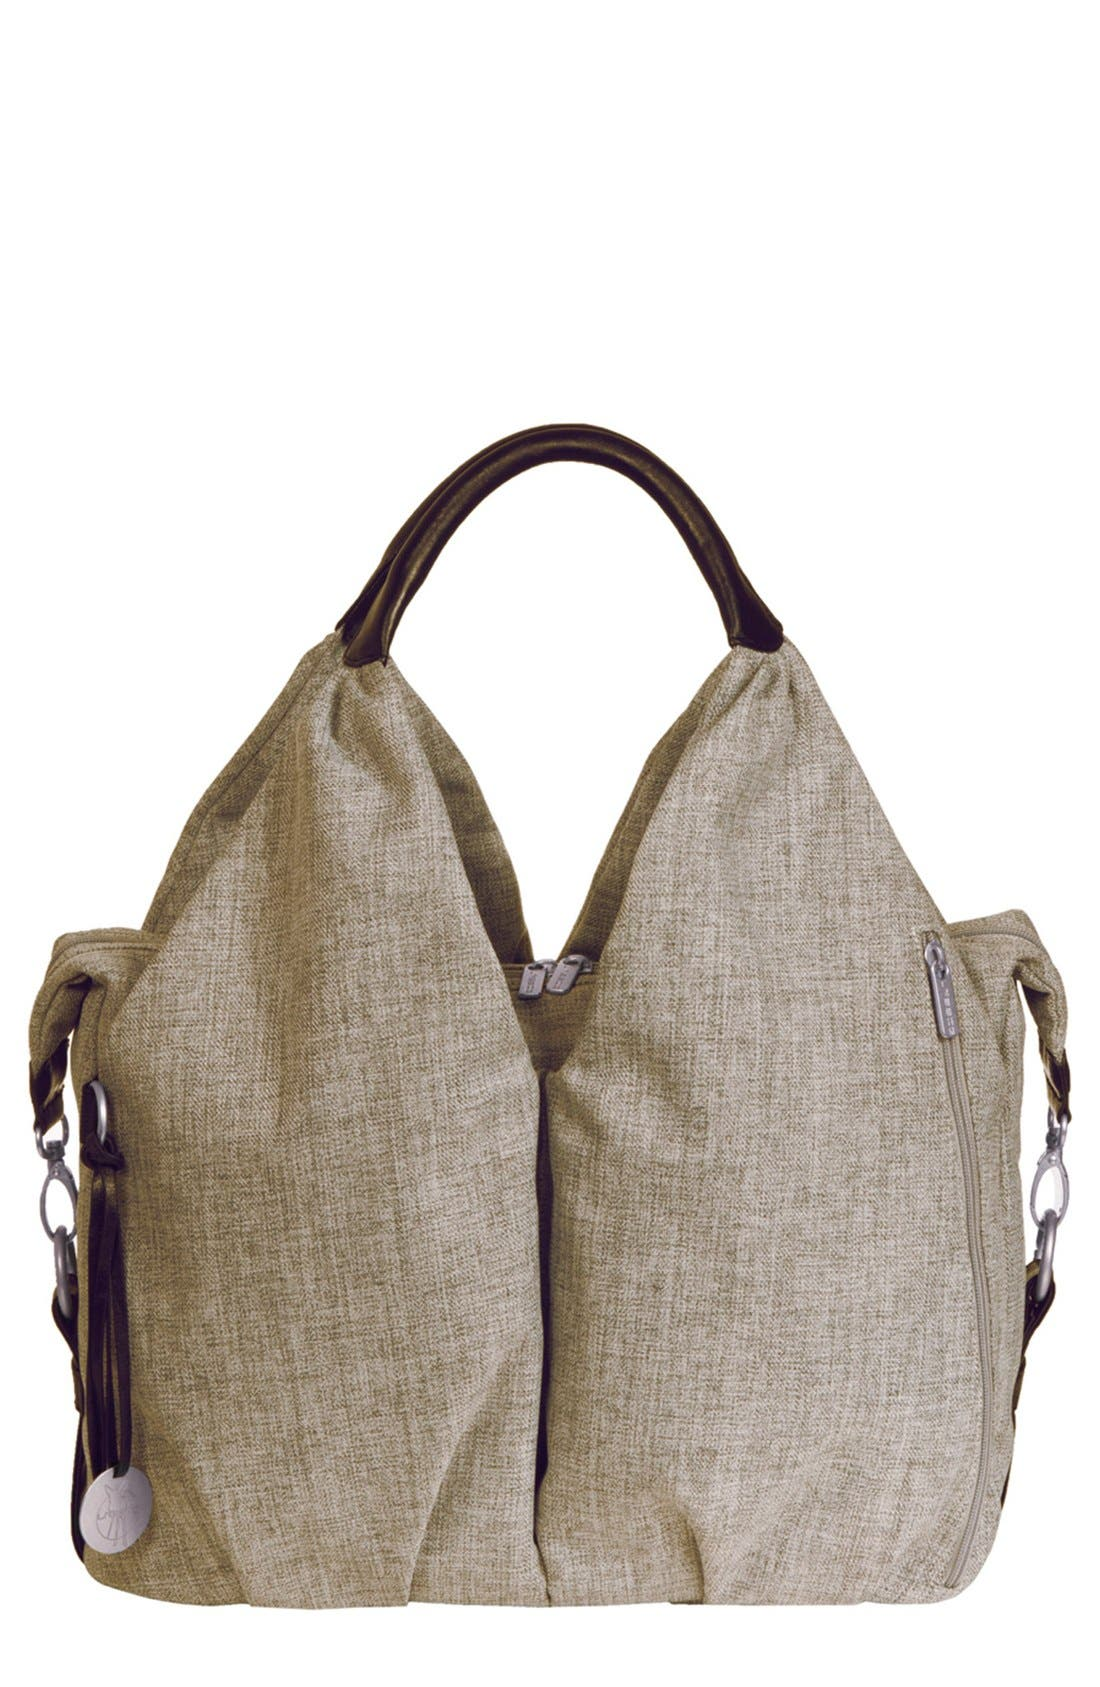 LÄSSIG 'Green Label - Neckline' Diaper Bag